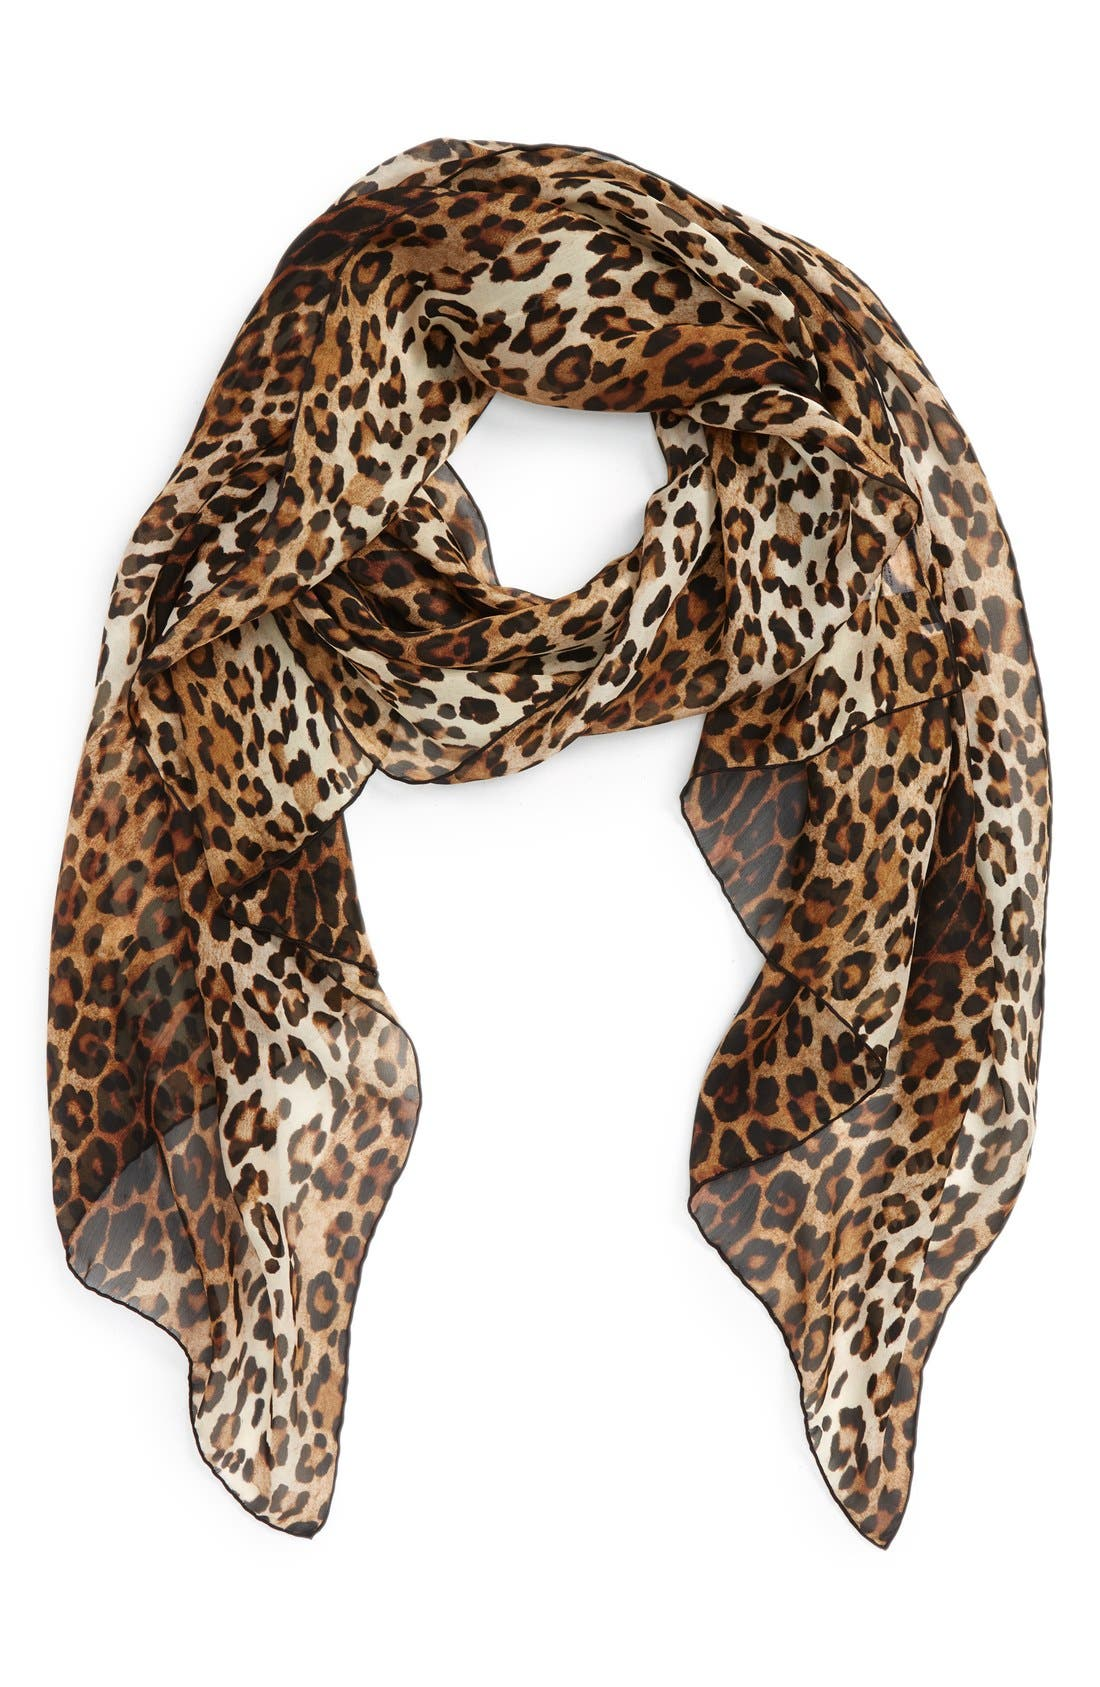 GIVENCHY Leopard Print Silk Scarf, Main, color, 200